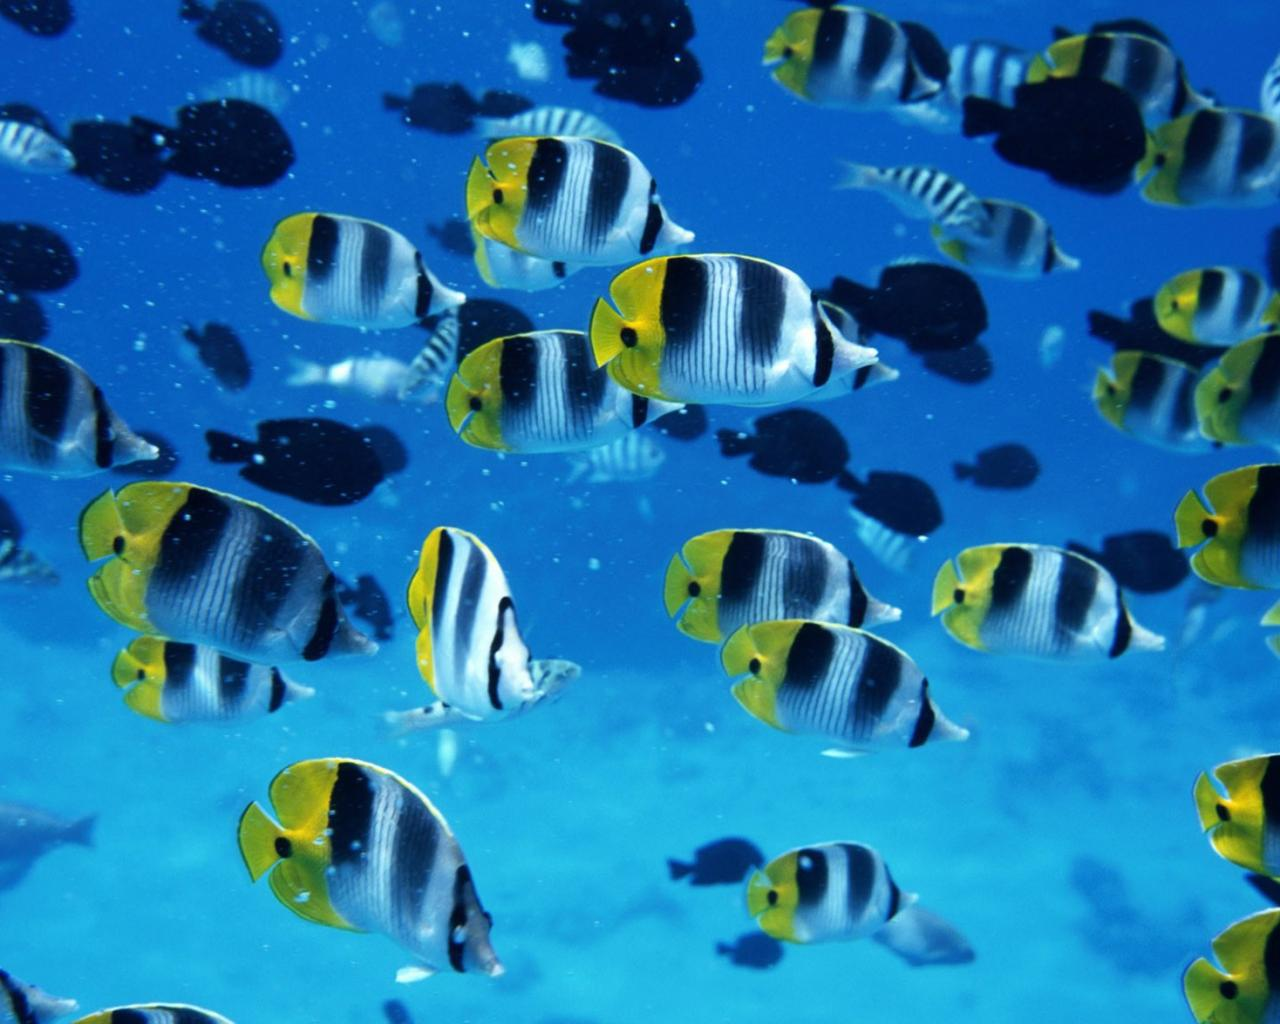 32831 download wallpaper Animals, Fishes screensavers and pictures for free